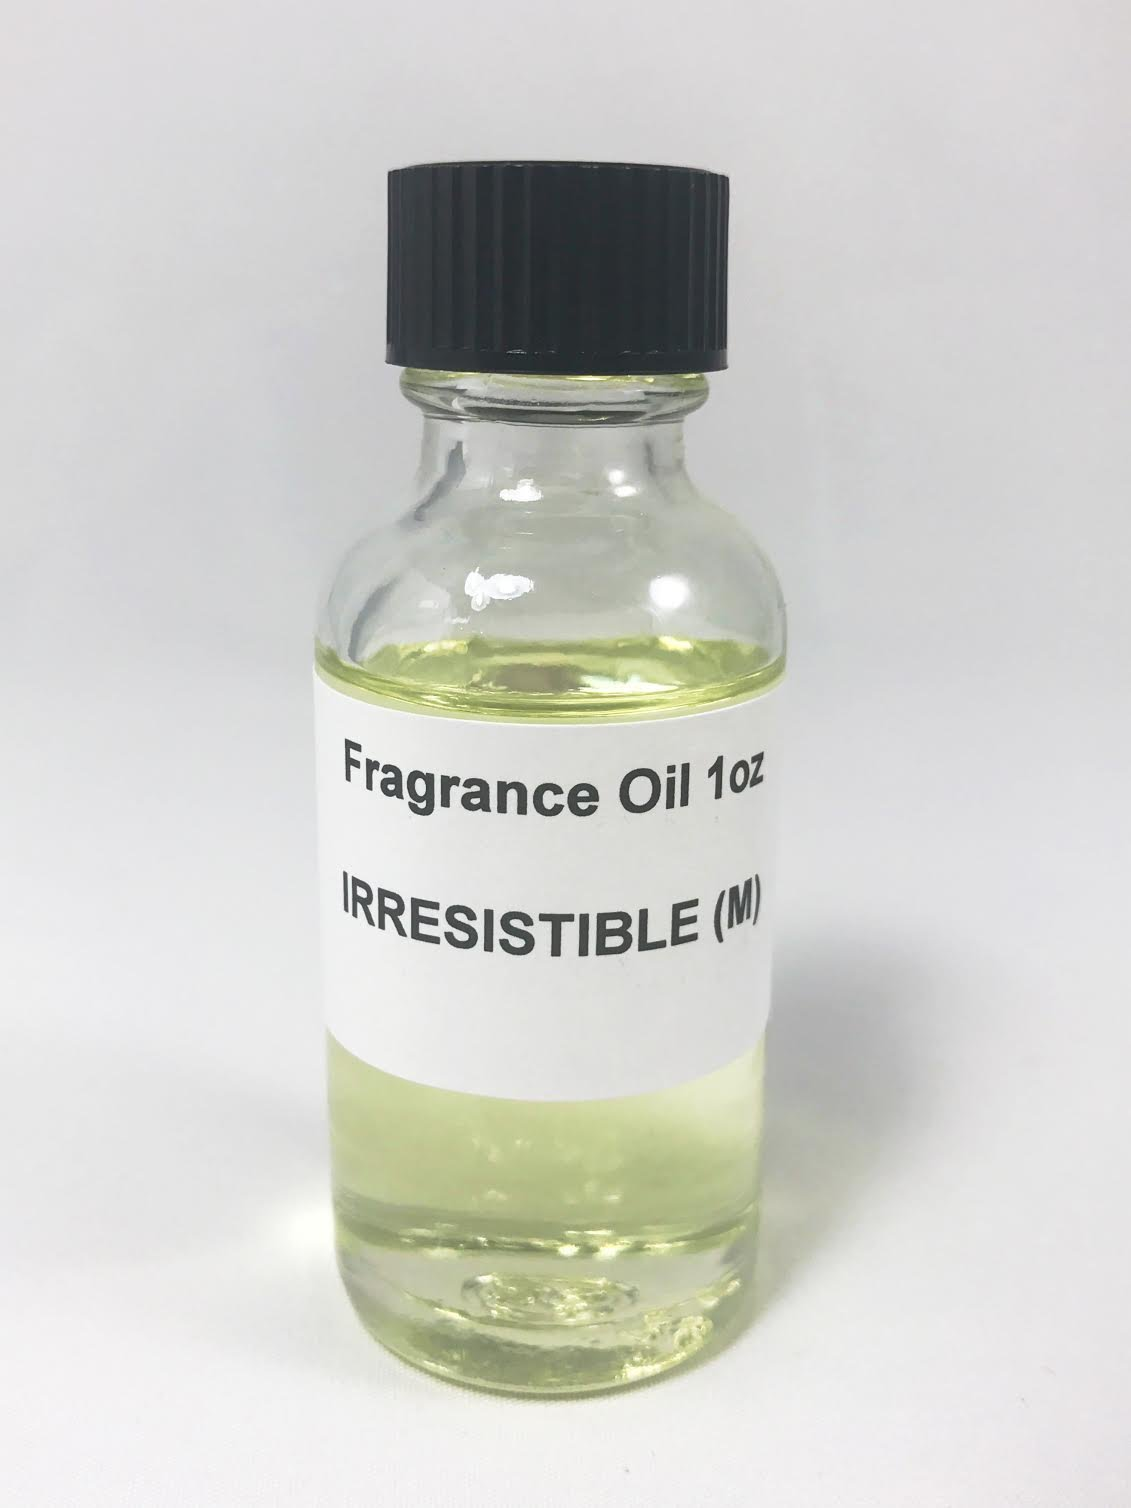 IRRESISTIBLE (M) Fragrance Oil 1oz Perfume Body Oil Made in USA